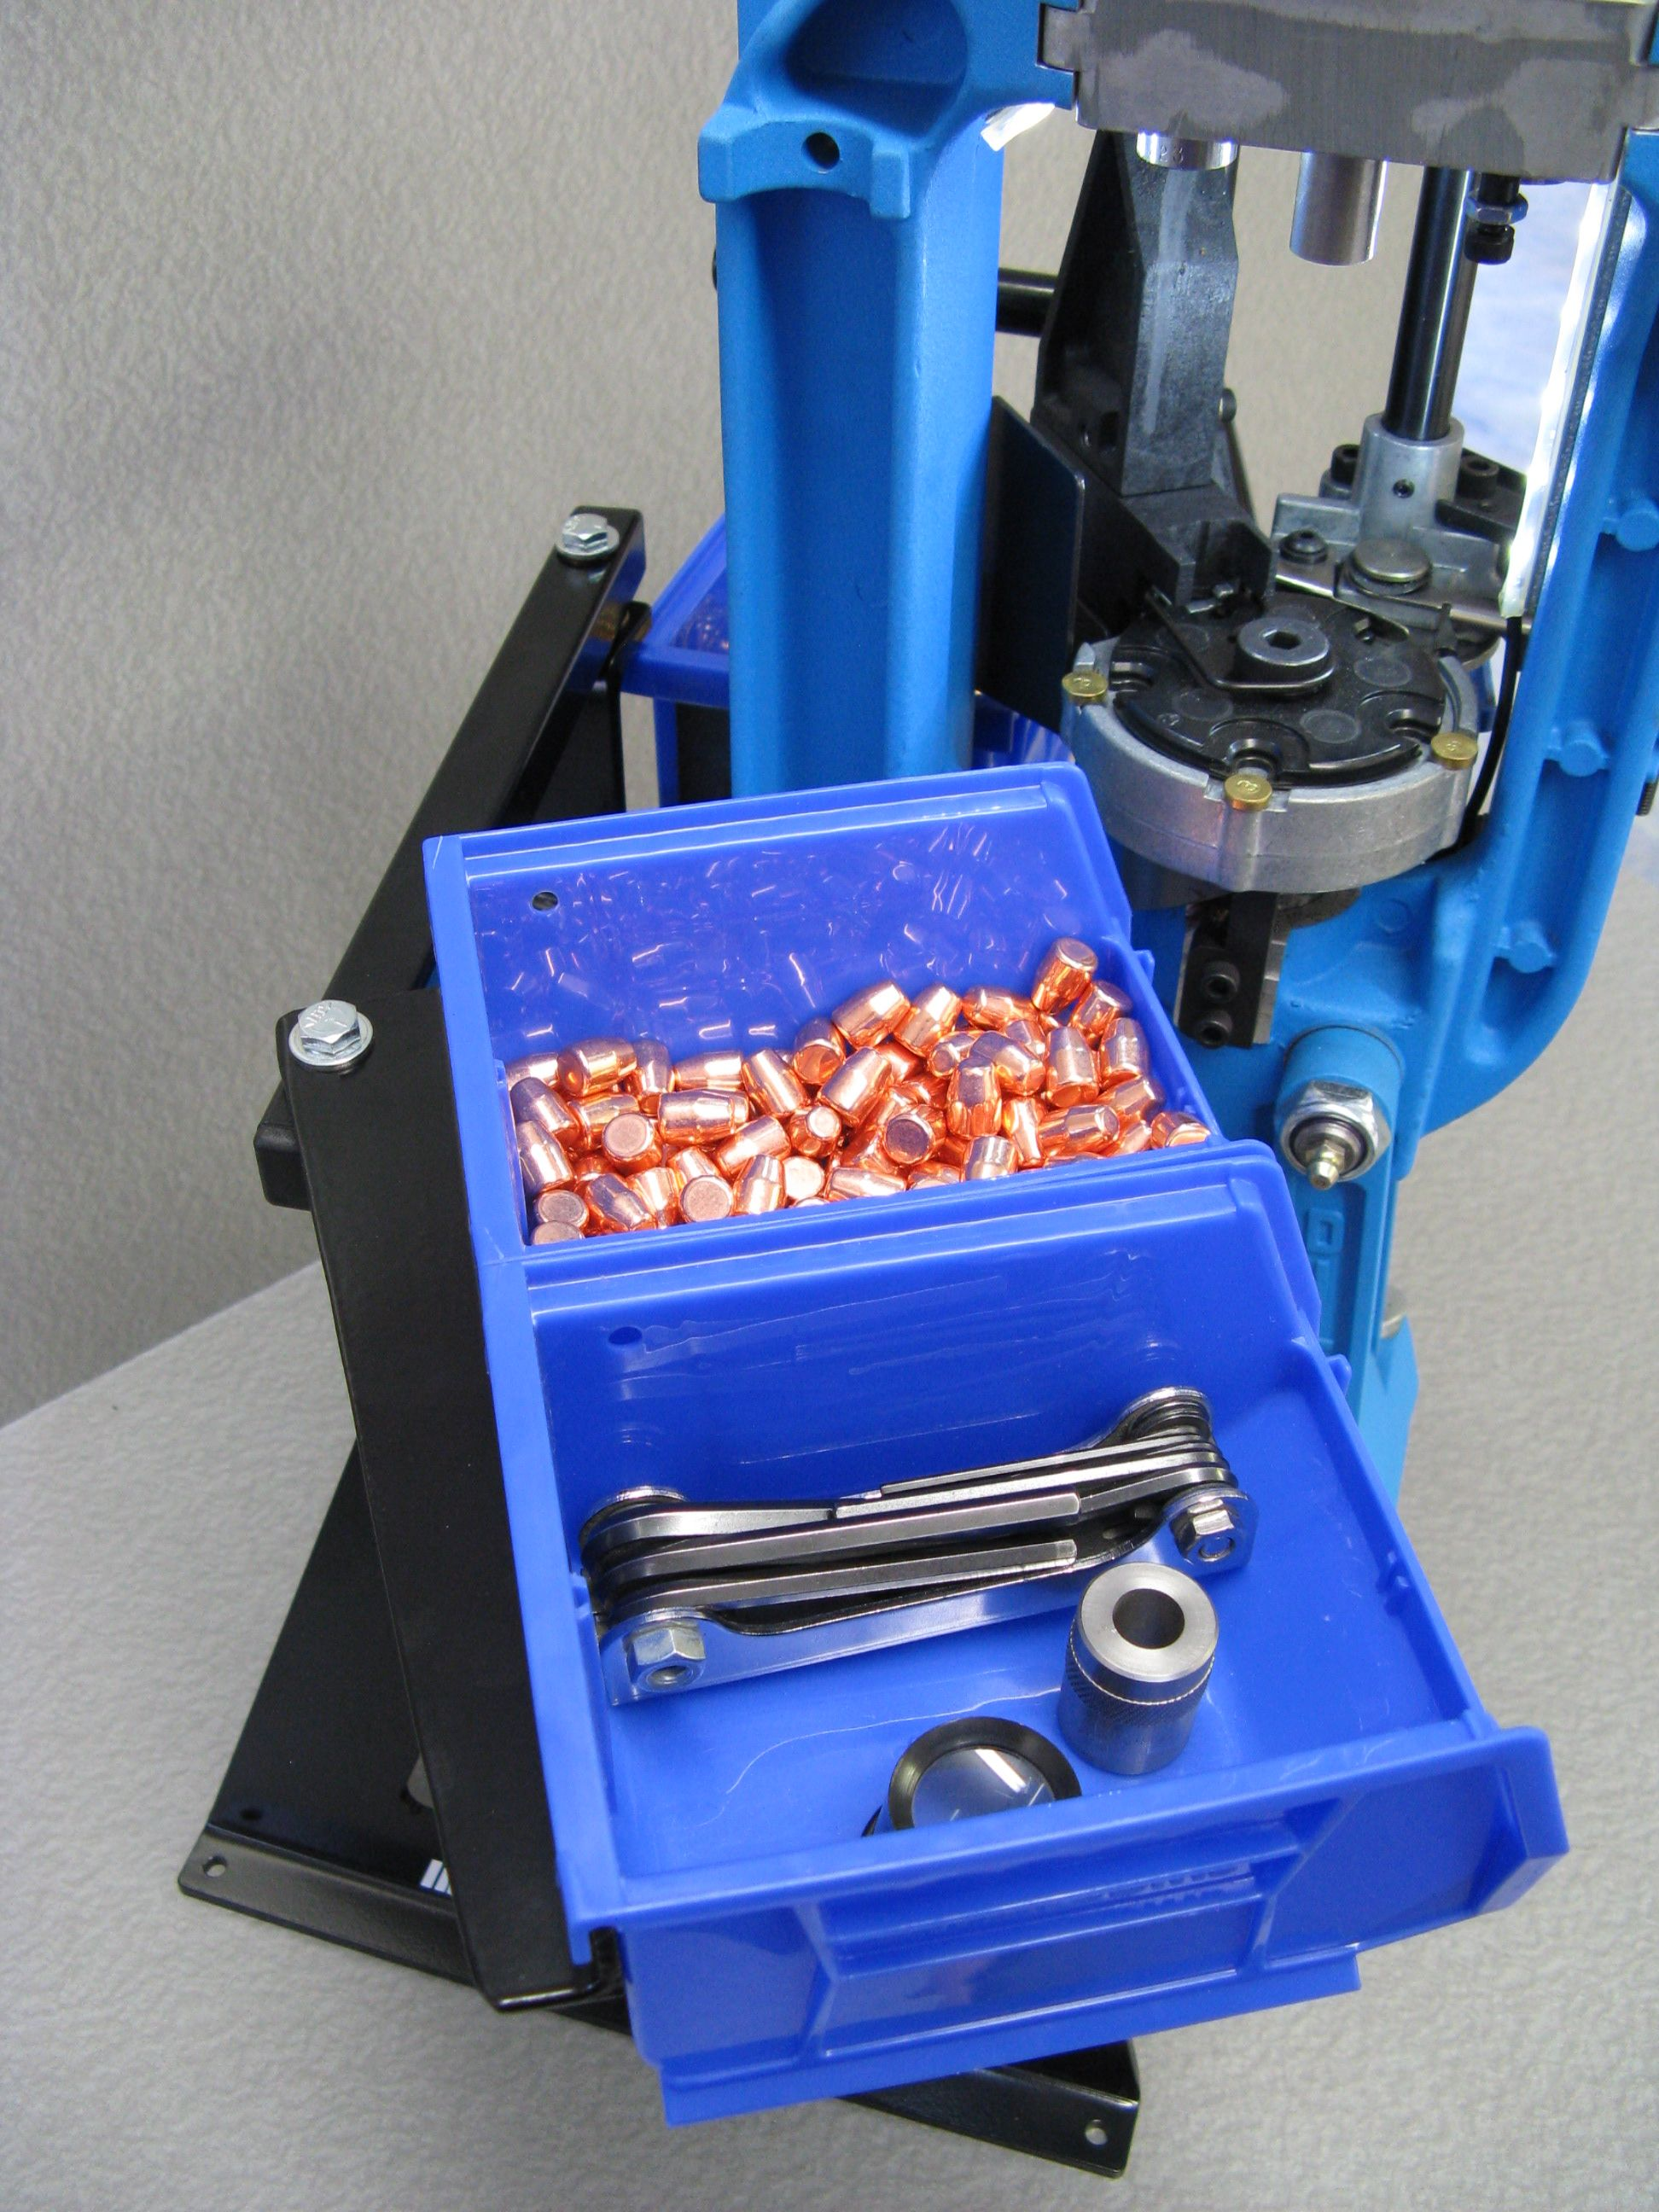 Double bullet tray assembly for Dillon XL 650 and RL 550 B & C